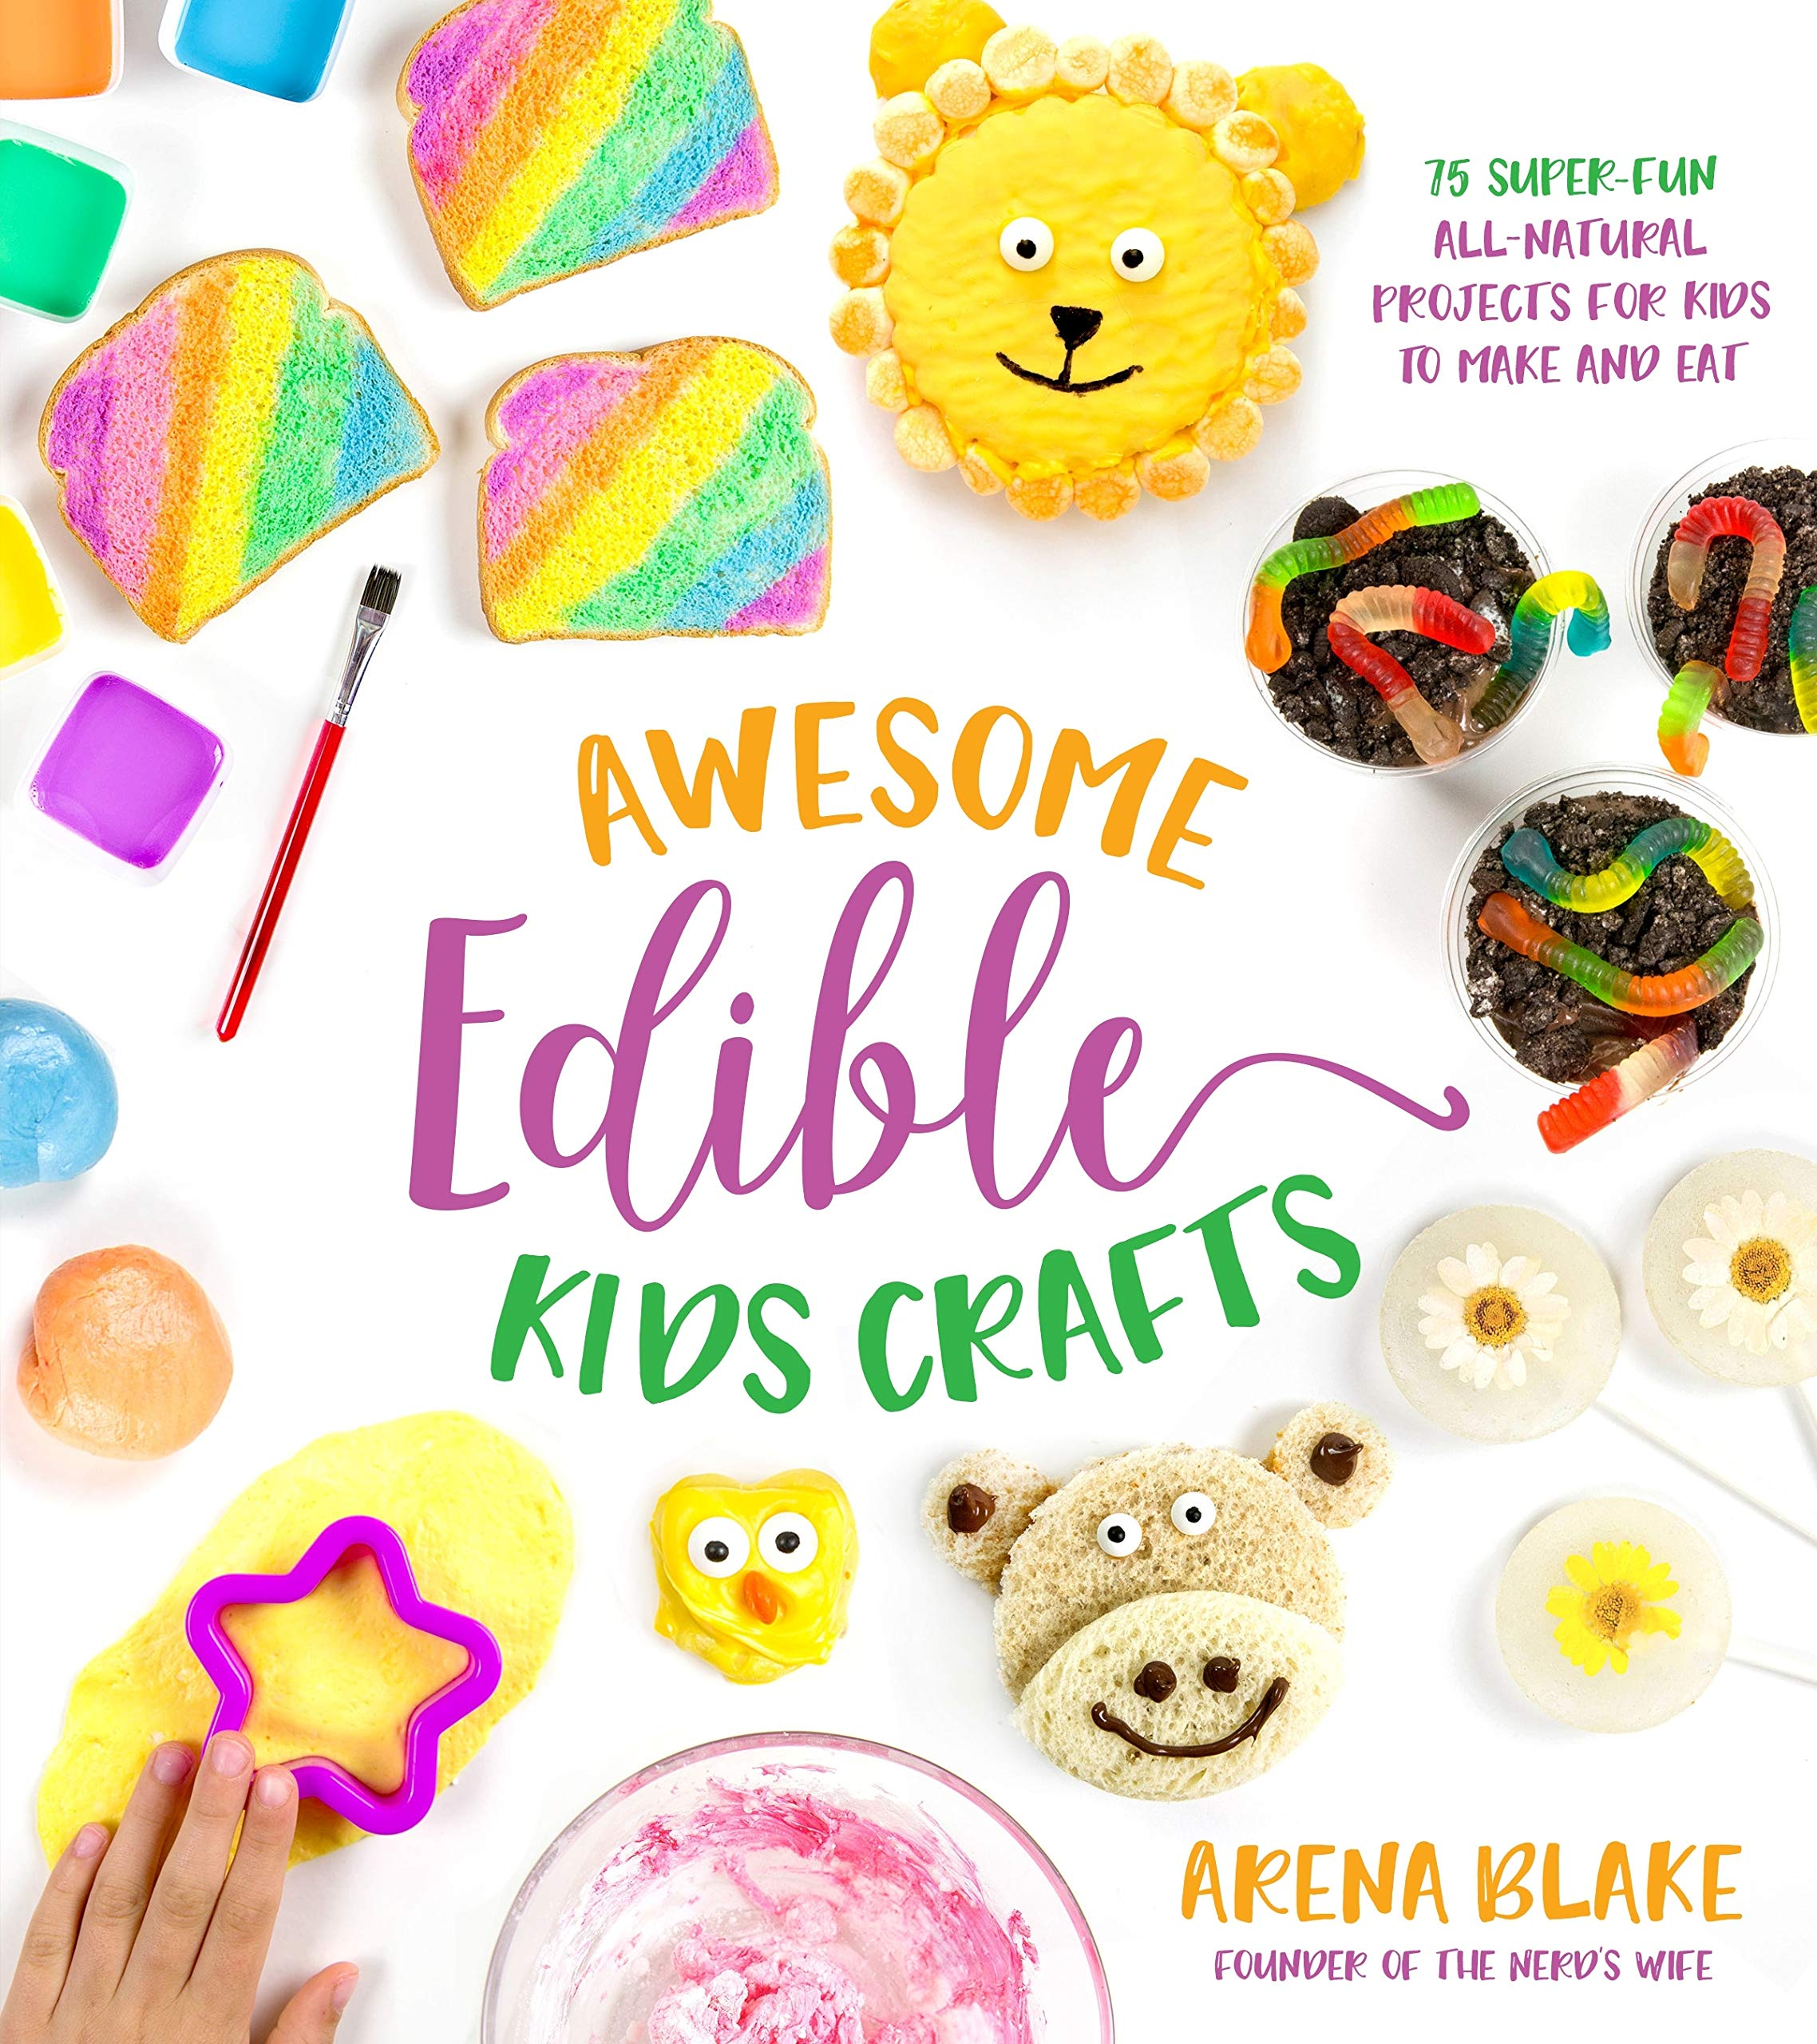 Awesome Edible Kids Crafts 75 Super Fun All Natural